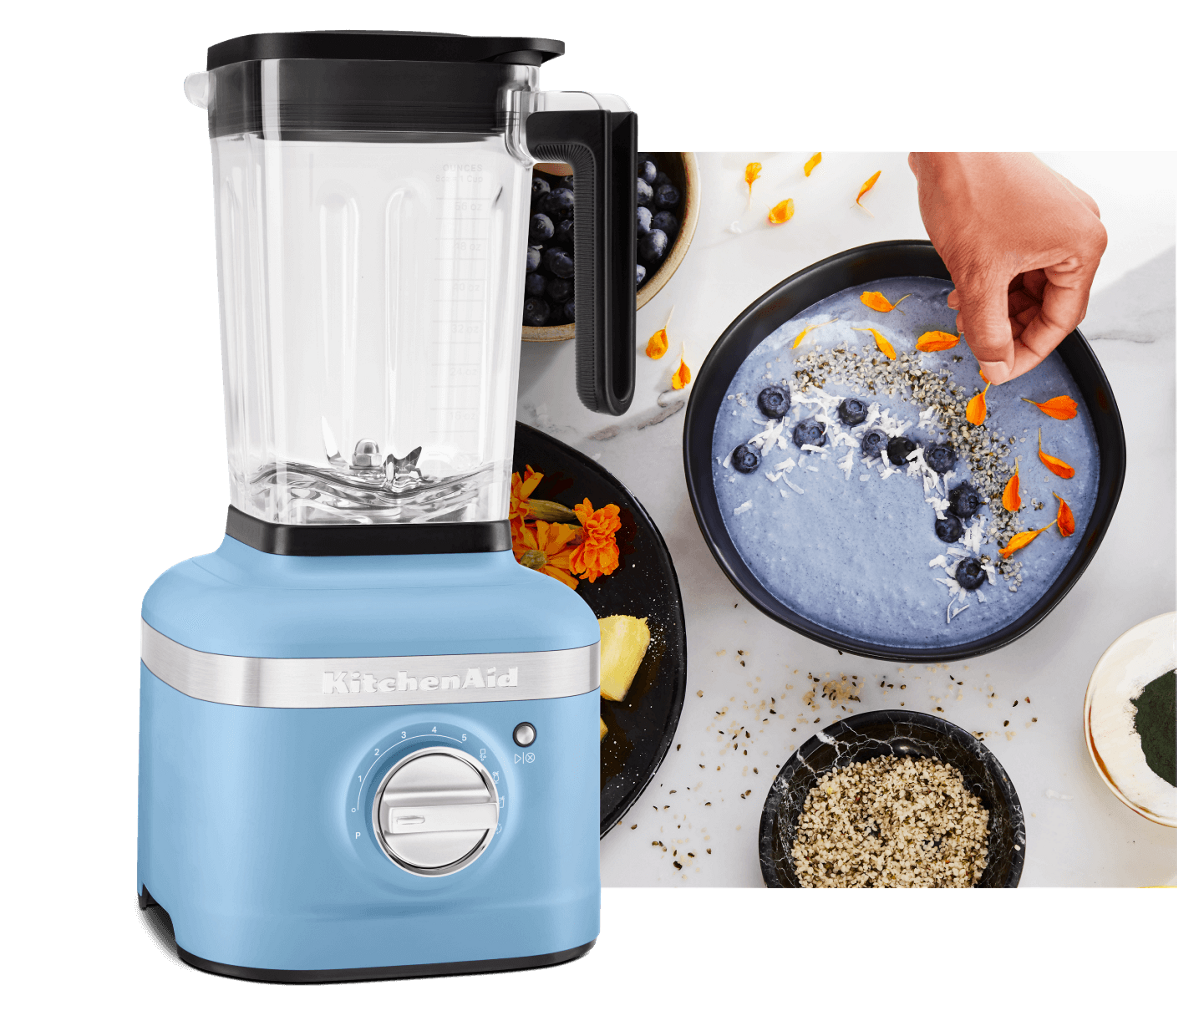 Kitchen Appliances To Bring Culinary Inspiration To Life